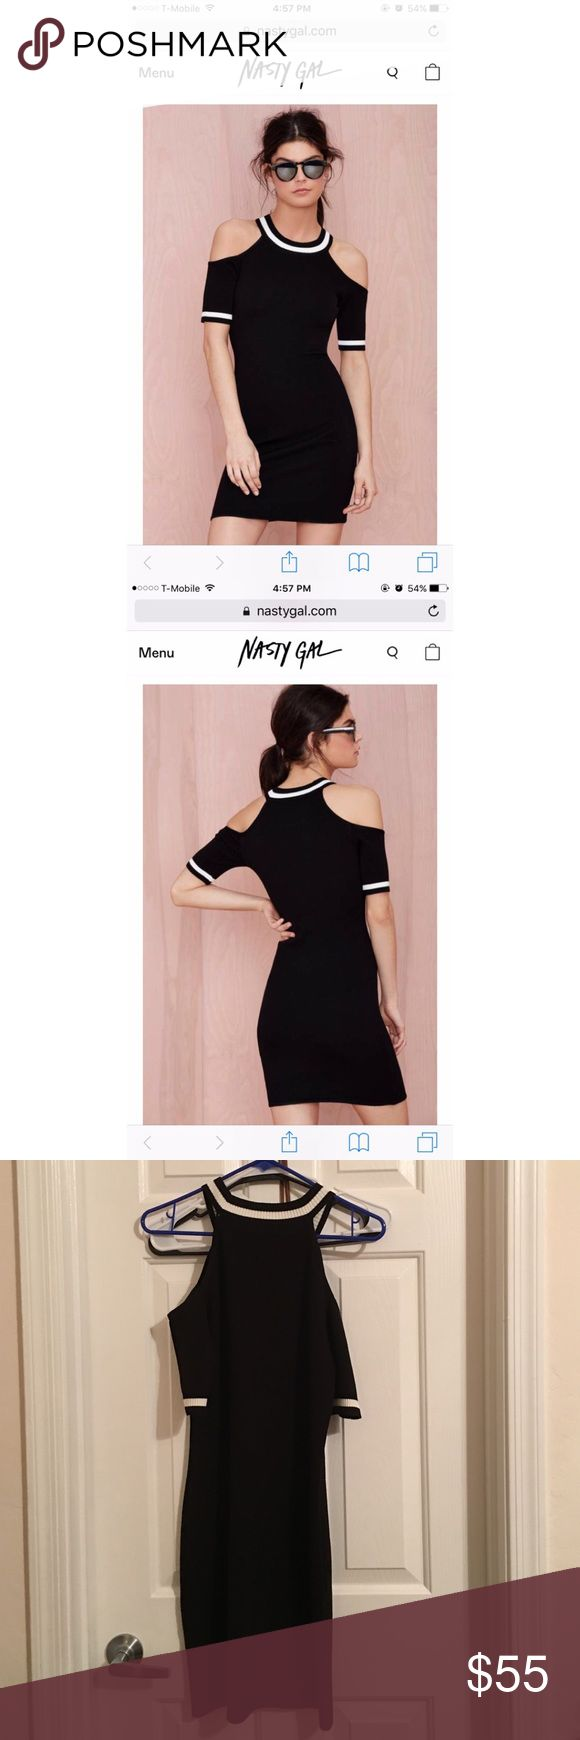 Nast gal dress Worn once! In great condition! Nasty Gal Dresses Mini